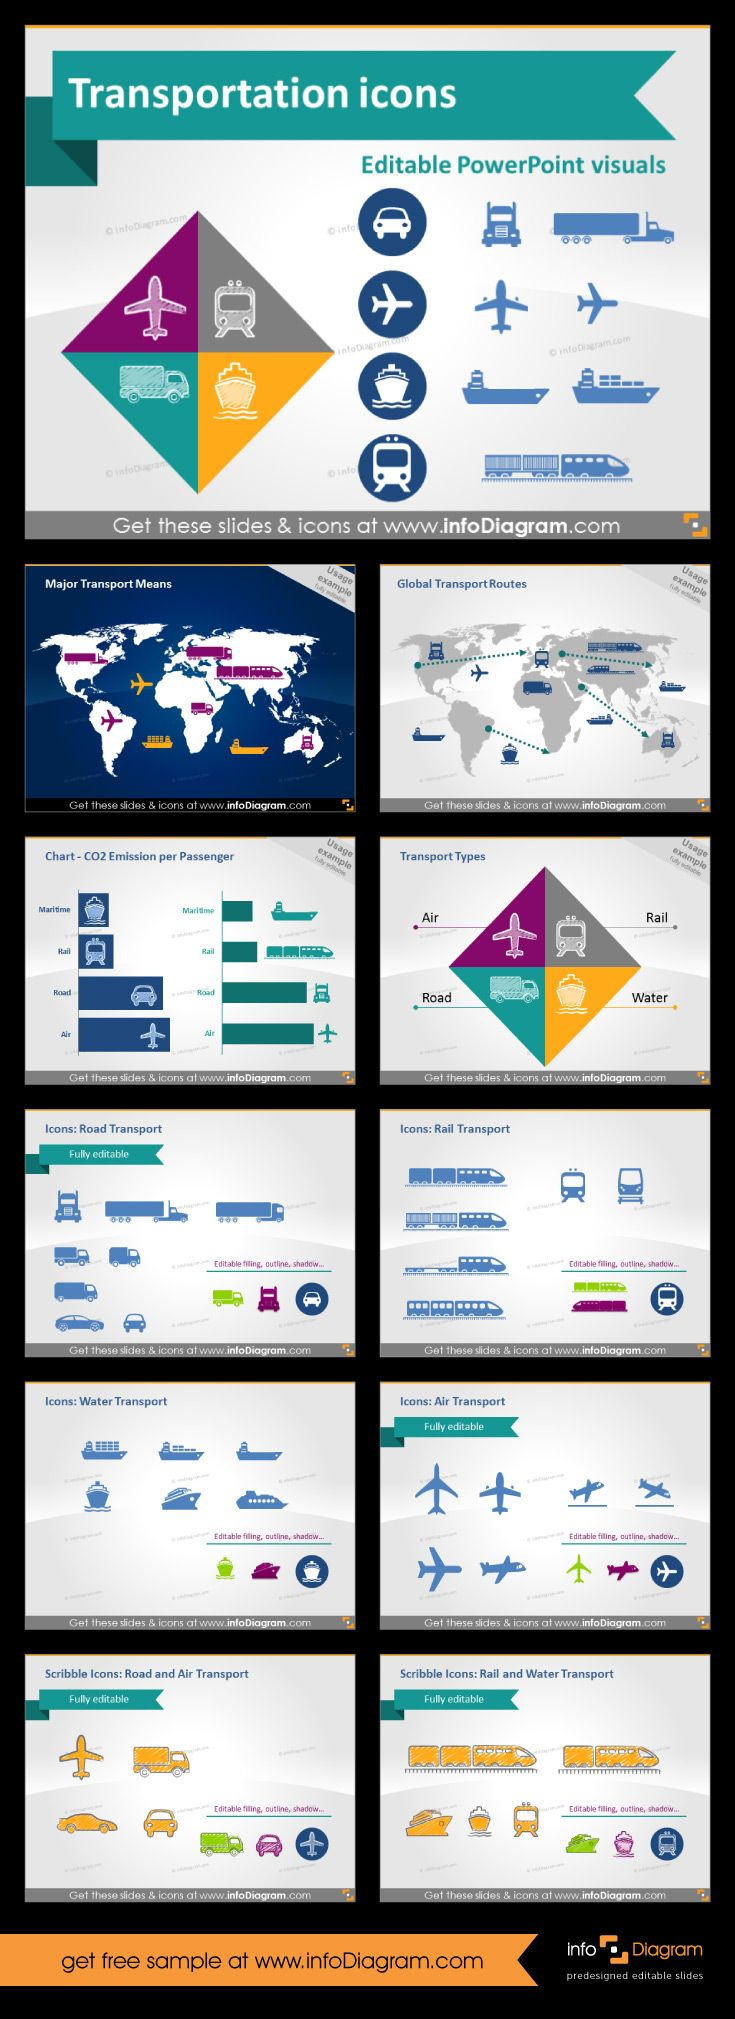 #icons for #transport presentation. This template with fully editable #cliparts is must have for every #logistics professional. You can create great looking #slides within minutes. With our truck, car, train, plane and other icons. We add also fully editable world #map. #powerpoint #template #theme #logistics